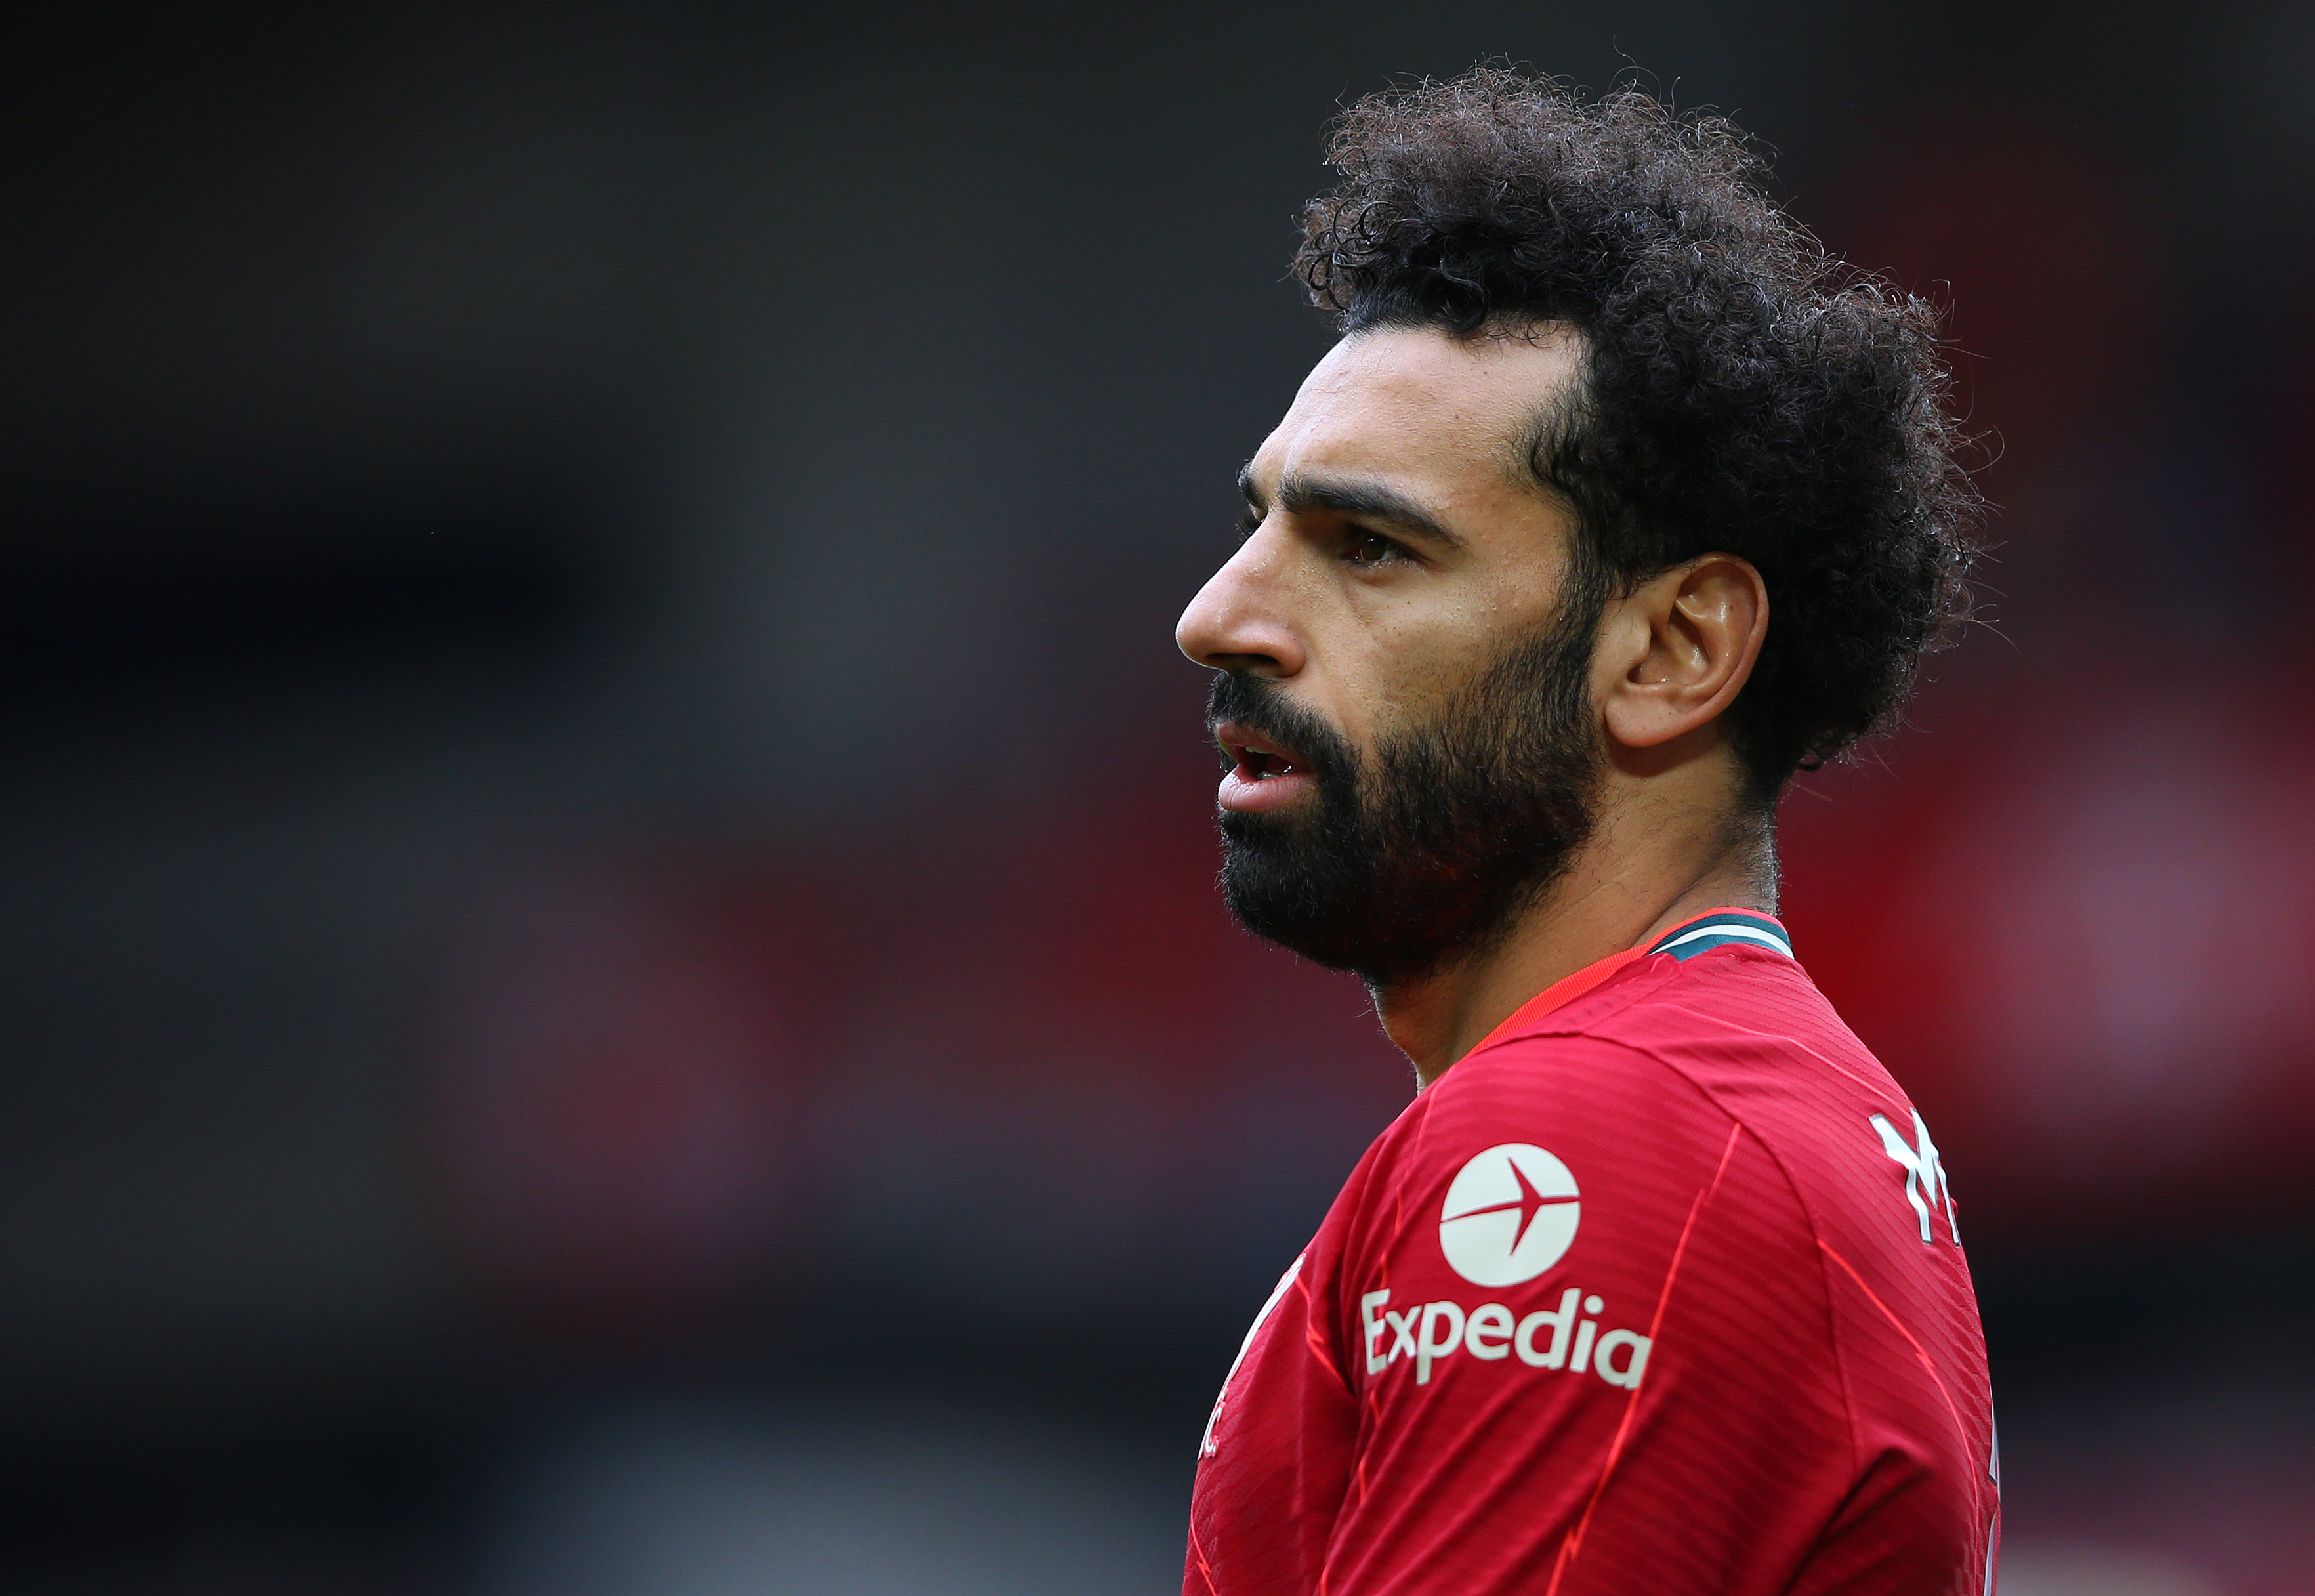 Mohamed Salah of Liverpool looks on during the Premier League match between Liverpool and Crystal Palace at Anfield on May 23, 2021 in Liverpool, England.